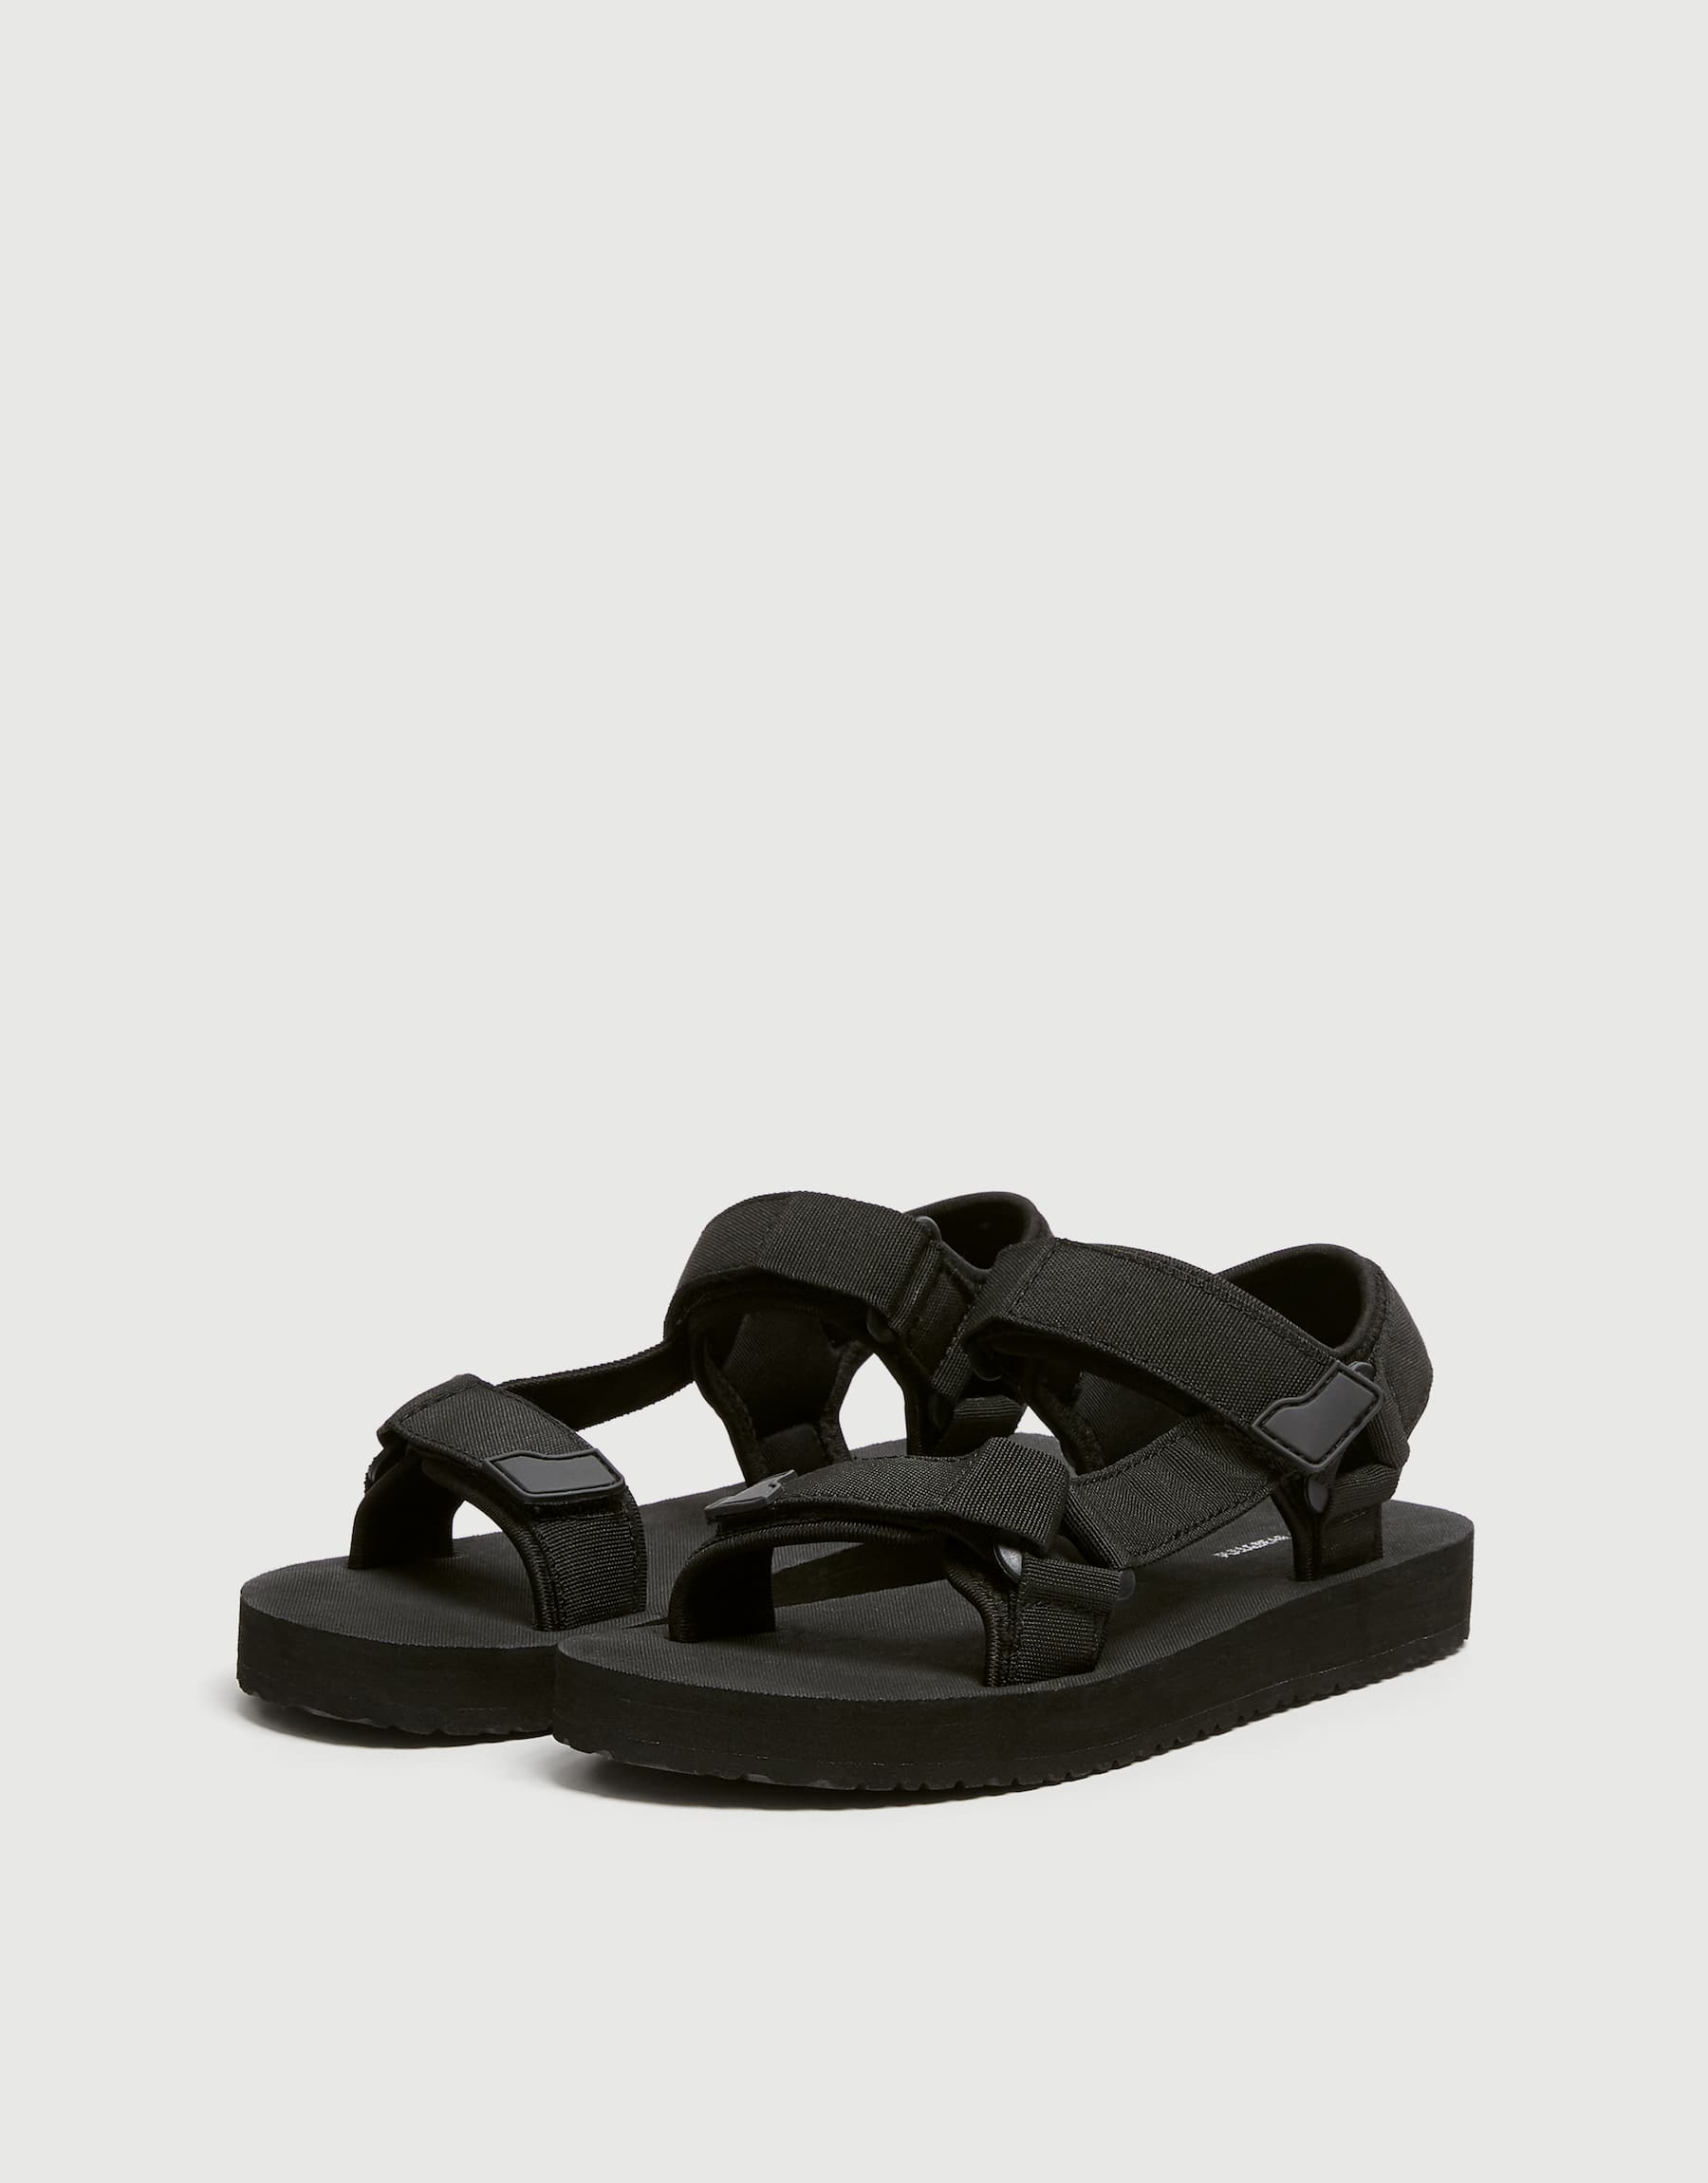 Sadie Sink By Pull&Bear Sports Sandals, $59.90